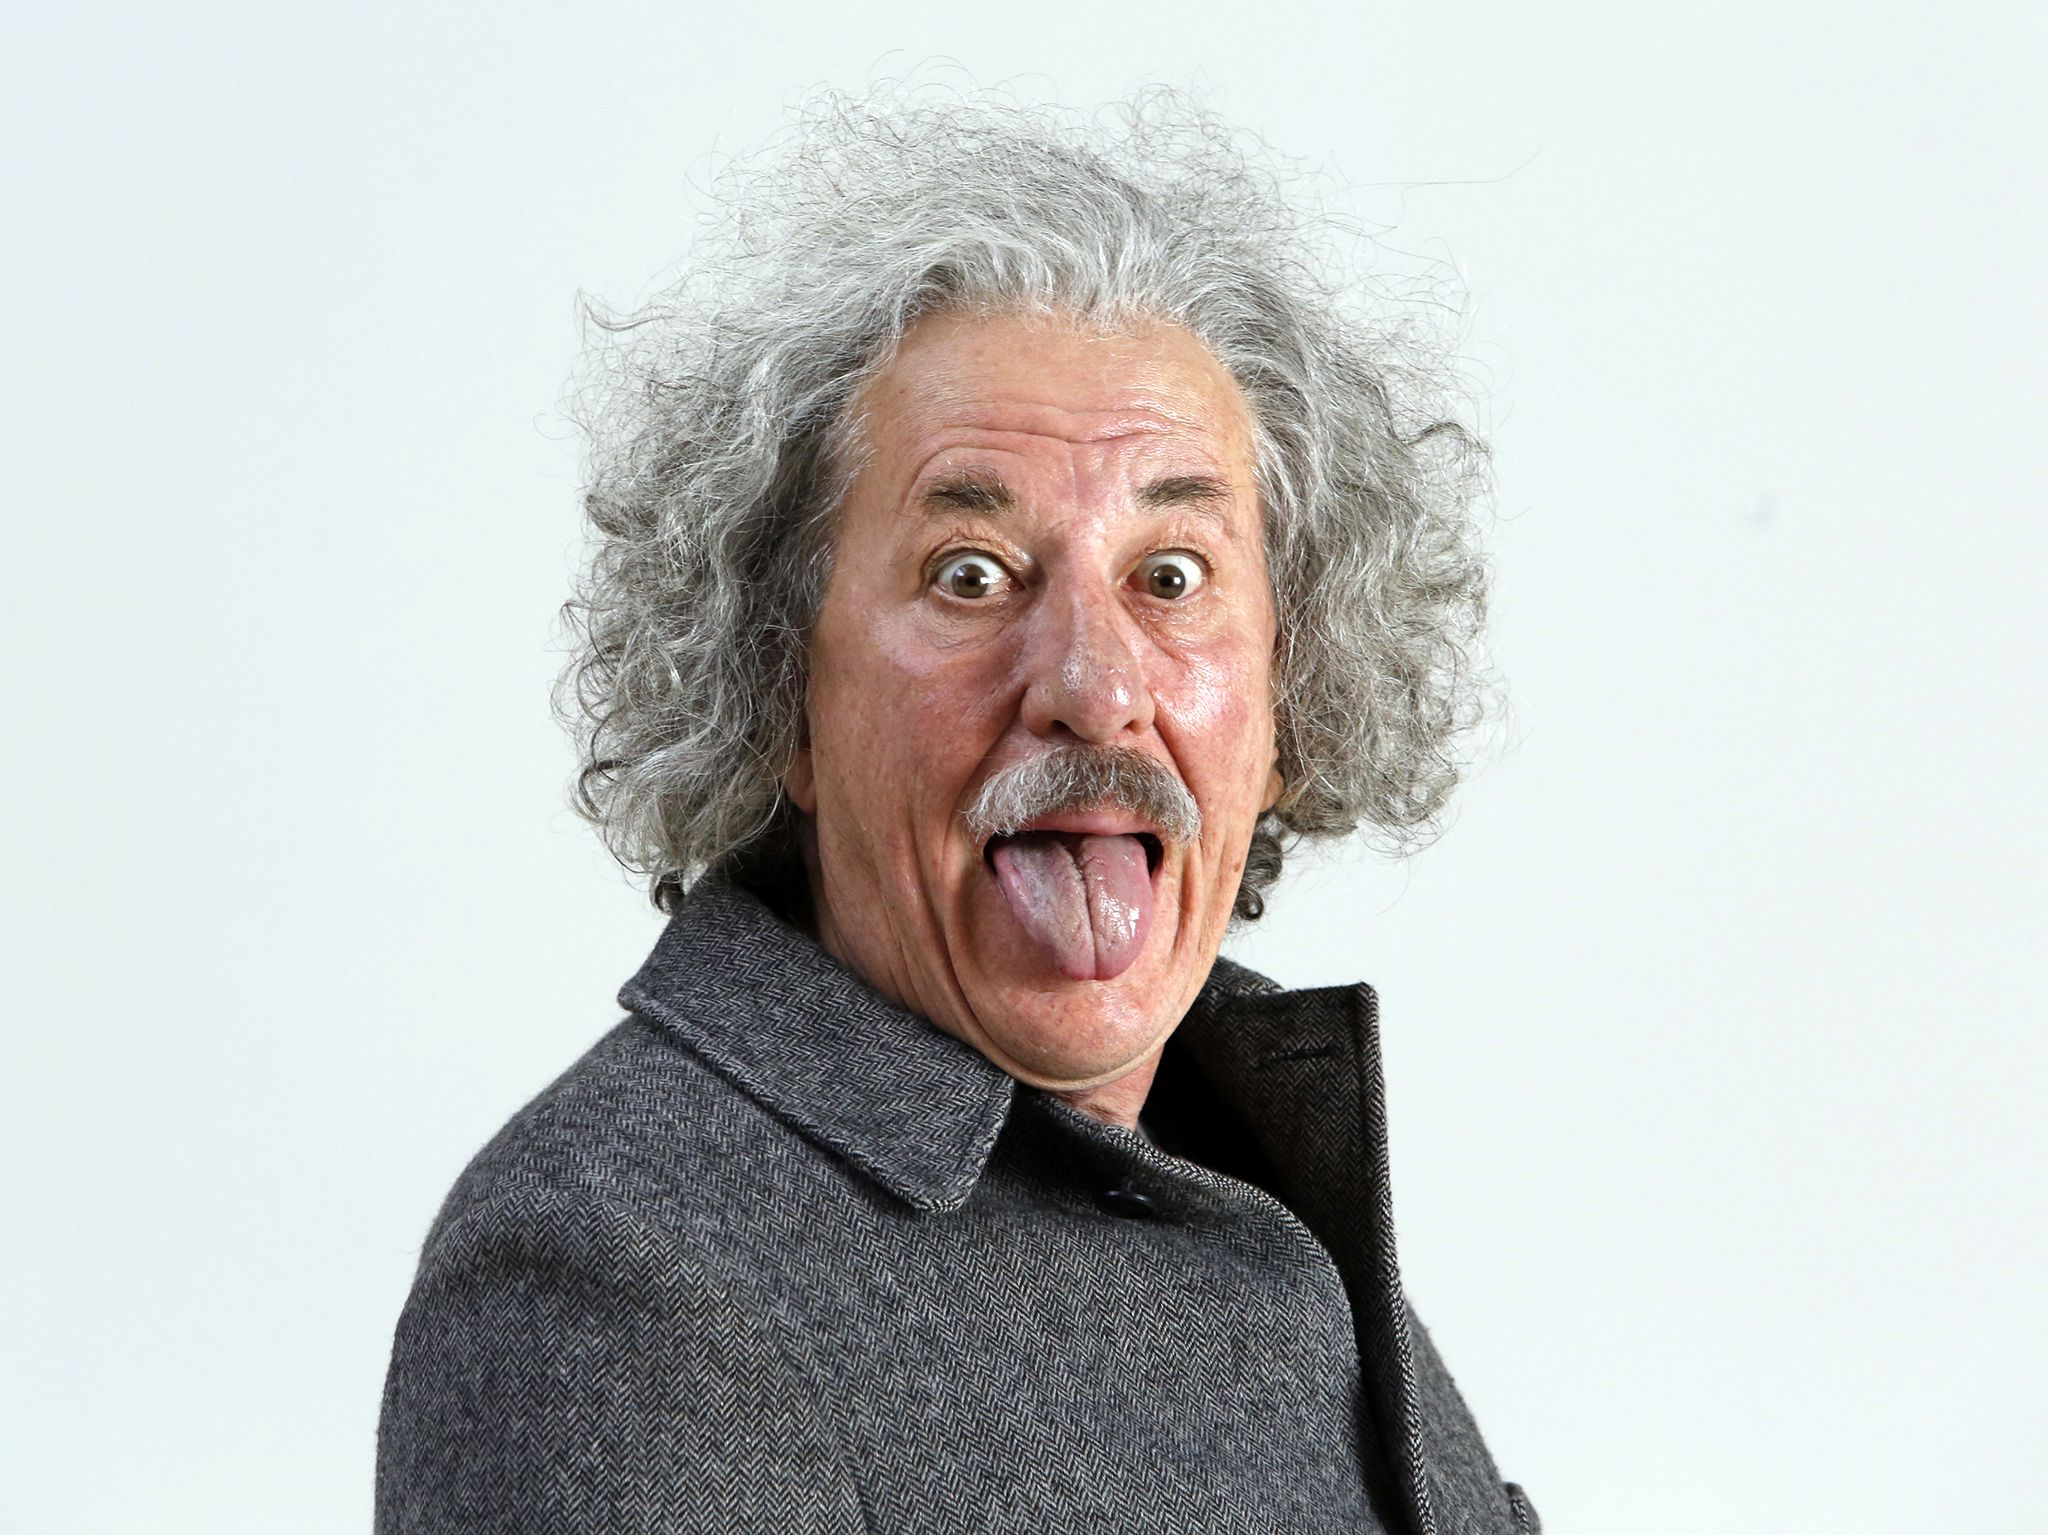 Czech Republic: Geoffrey Rush stars as Albert Einstein in National Geographic's Genius. [Photo of the day - May 2017]